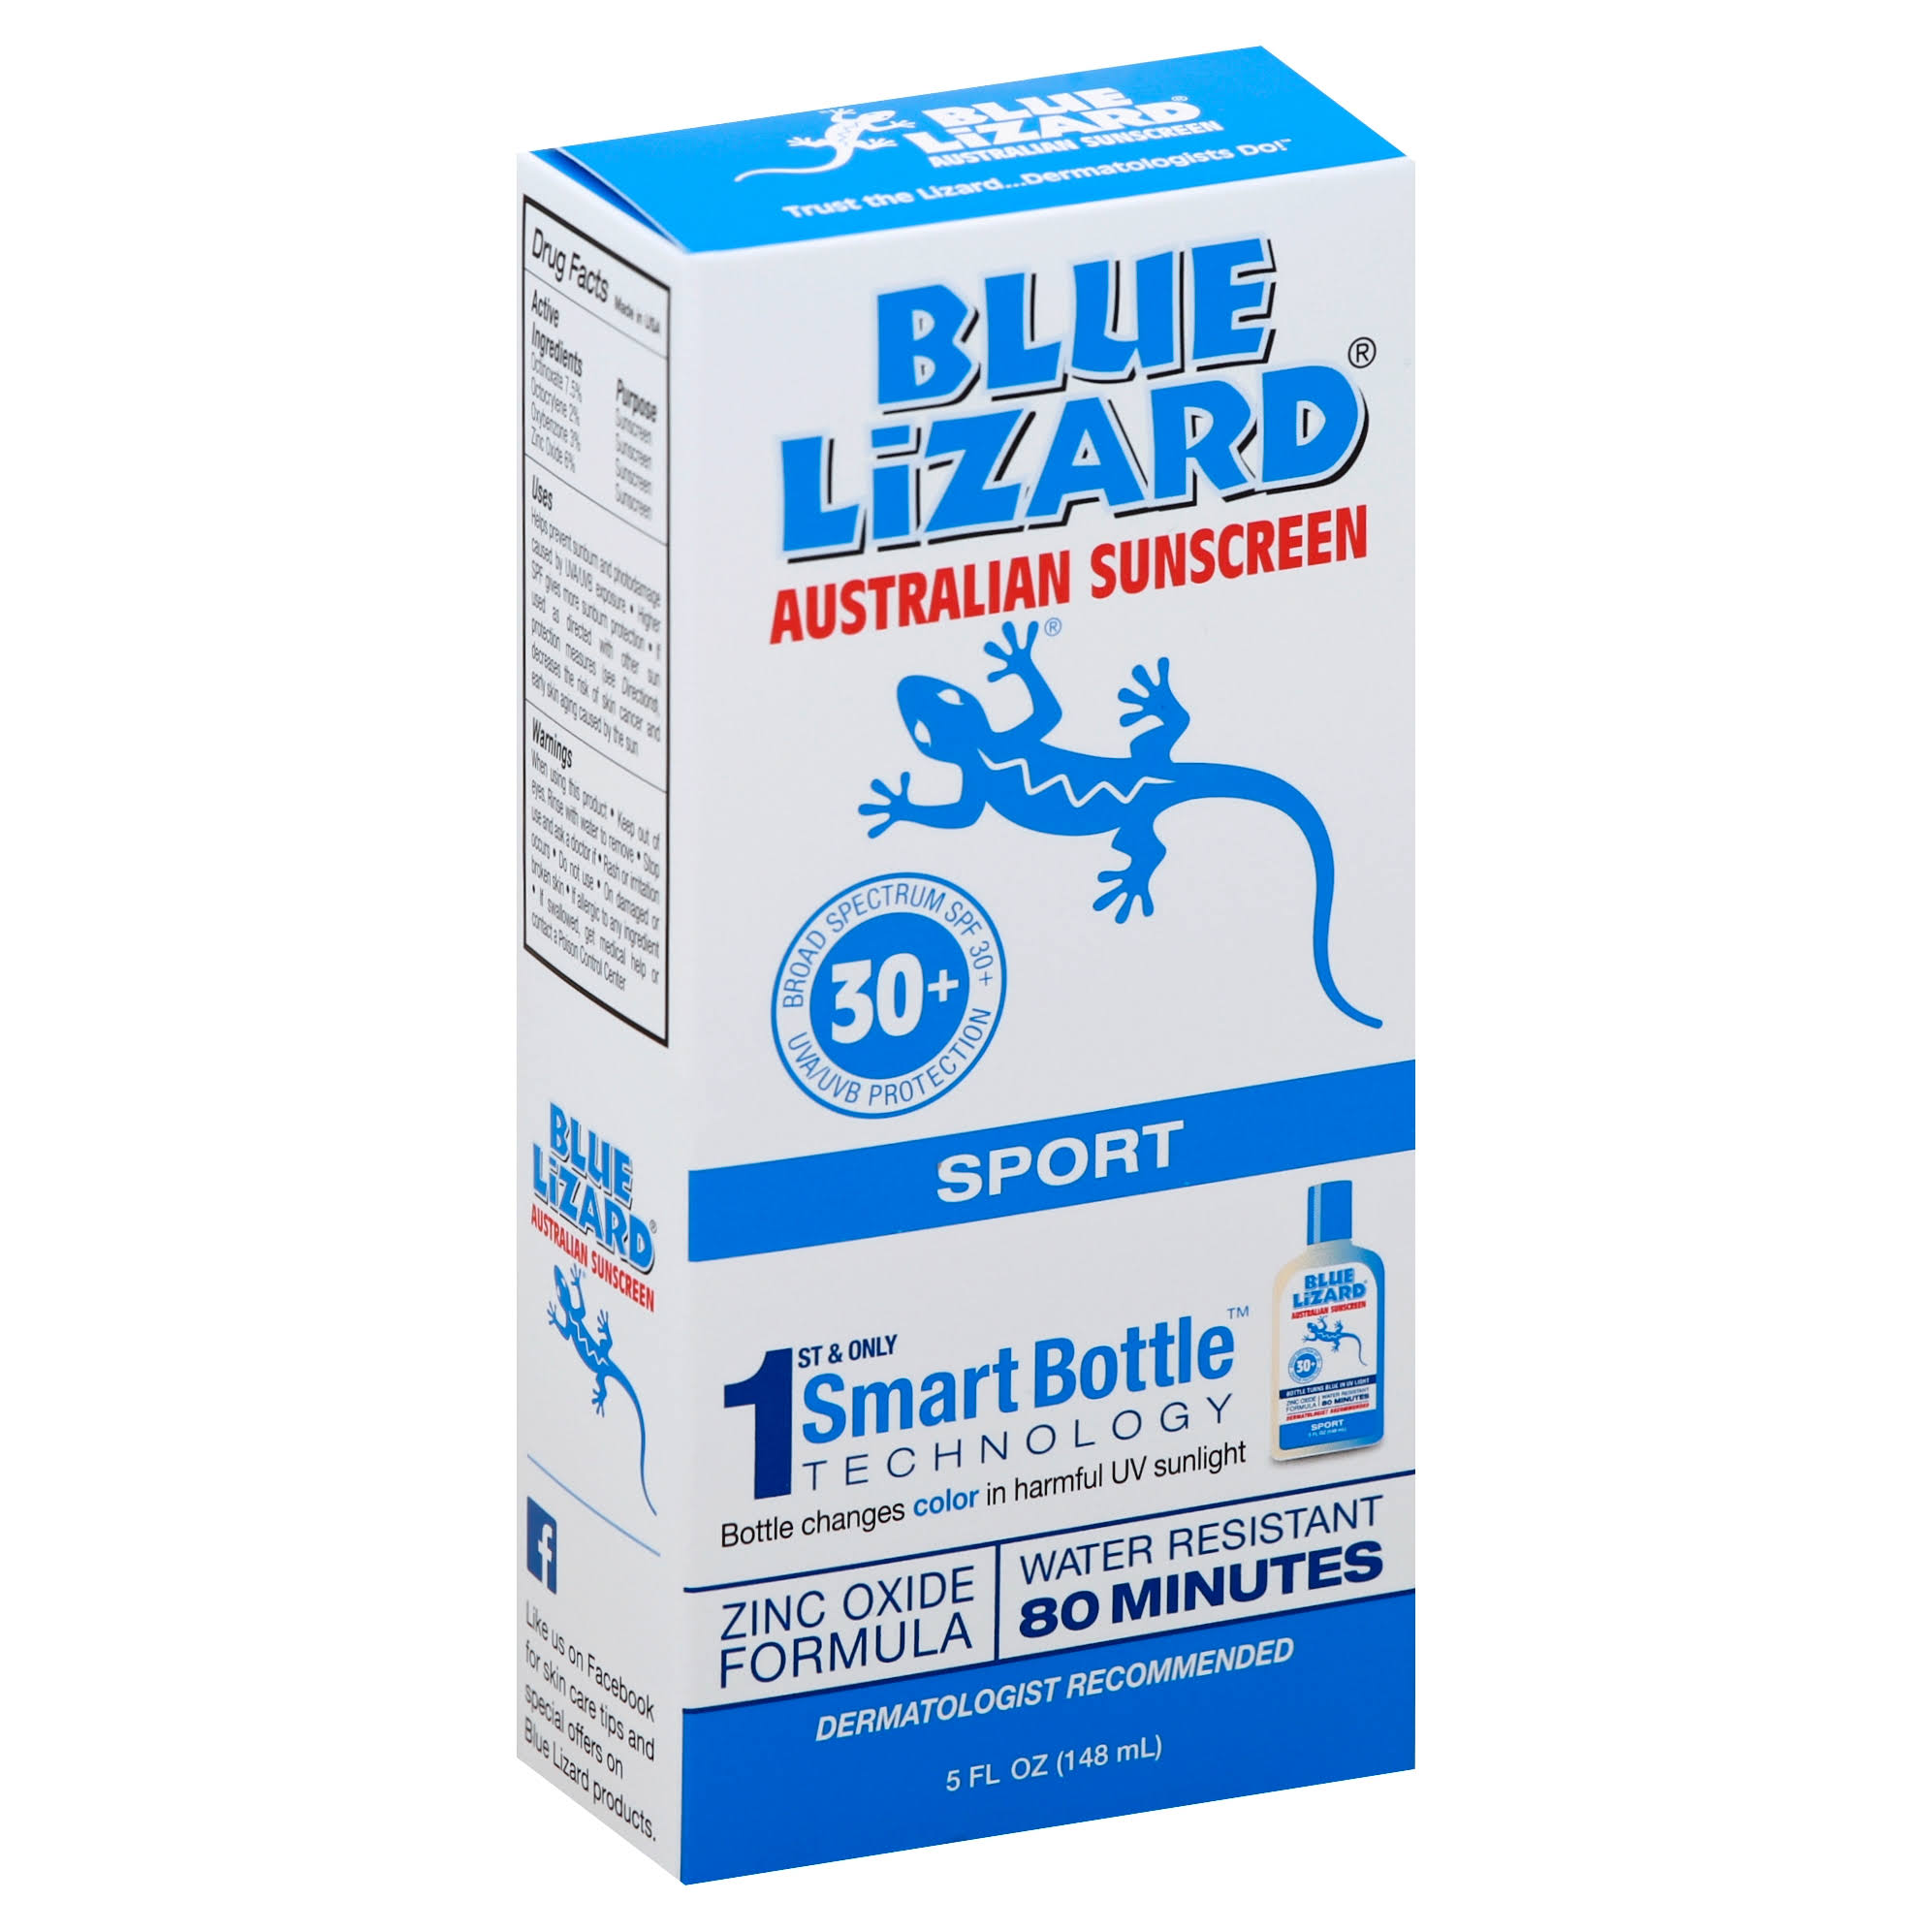 Blue Lizard Sport Australian Sunscreen - 148ml, SPF 30+